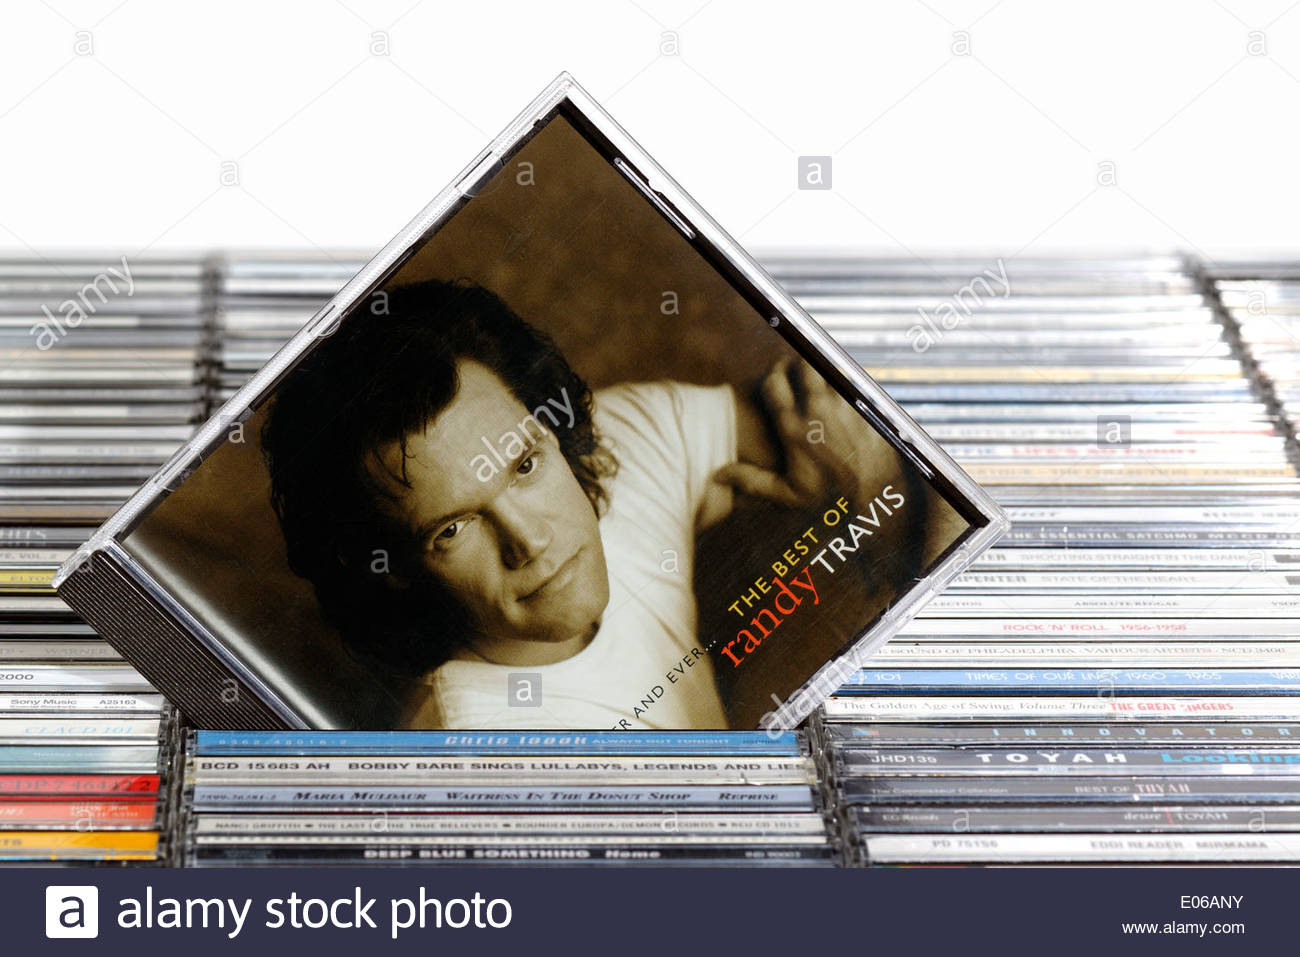 Randy Travis album Forever and Ever, piled music CD cases, England Stock Photo